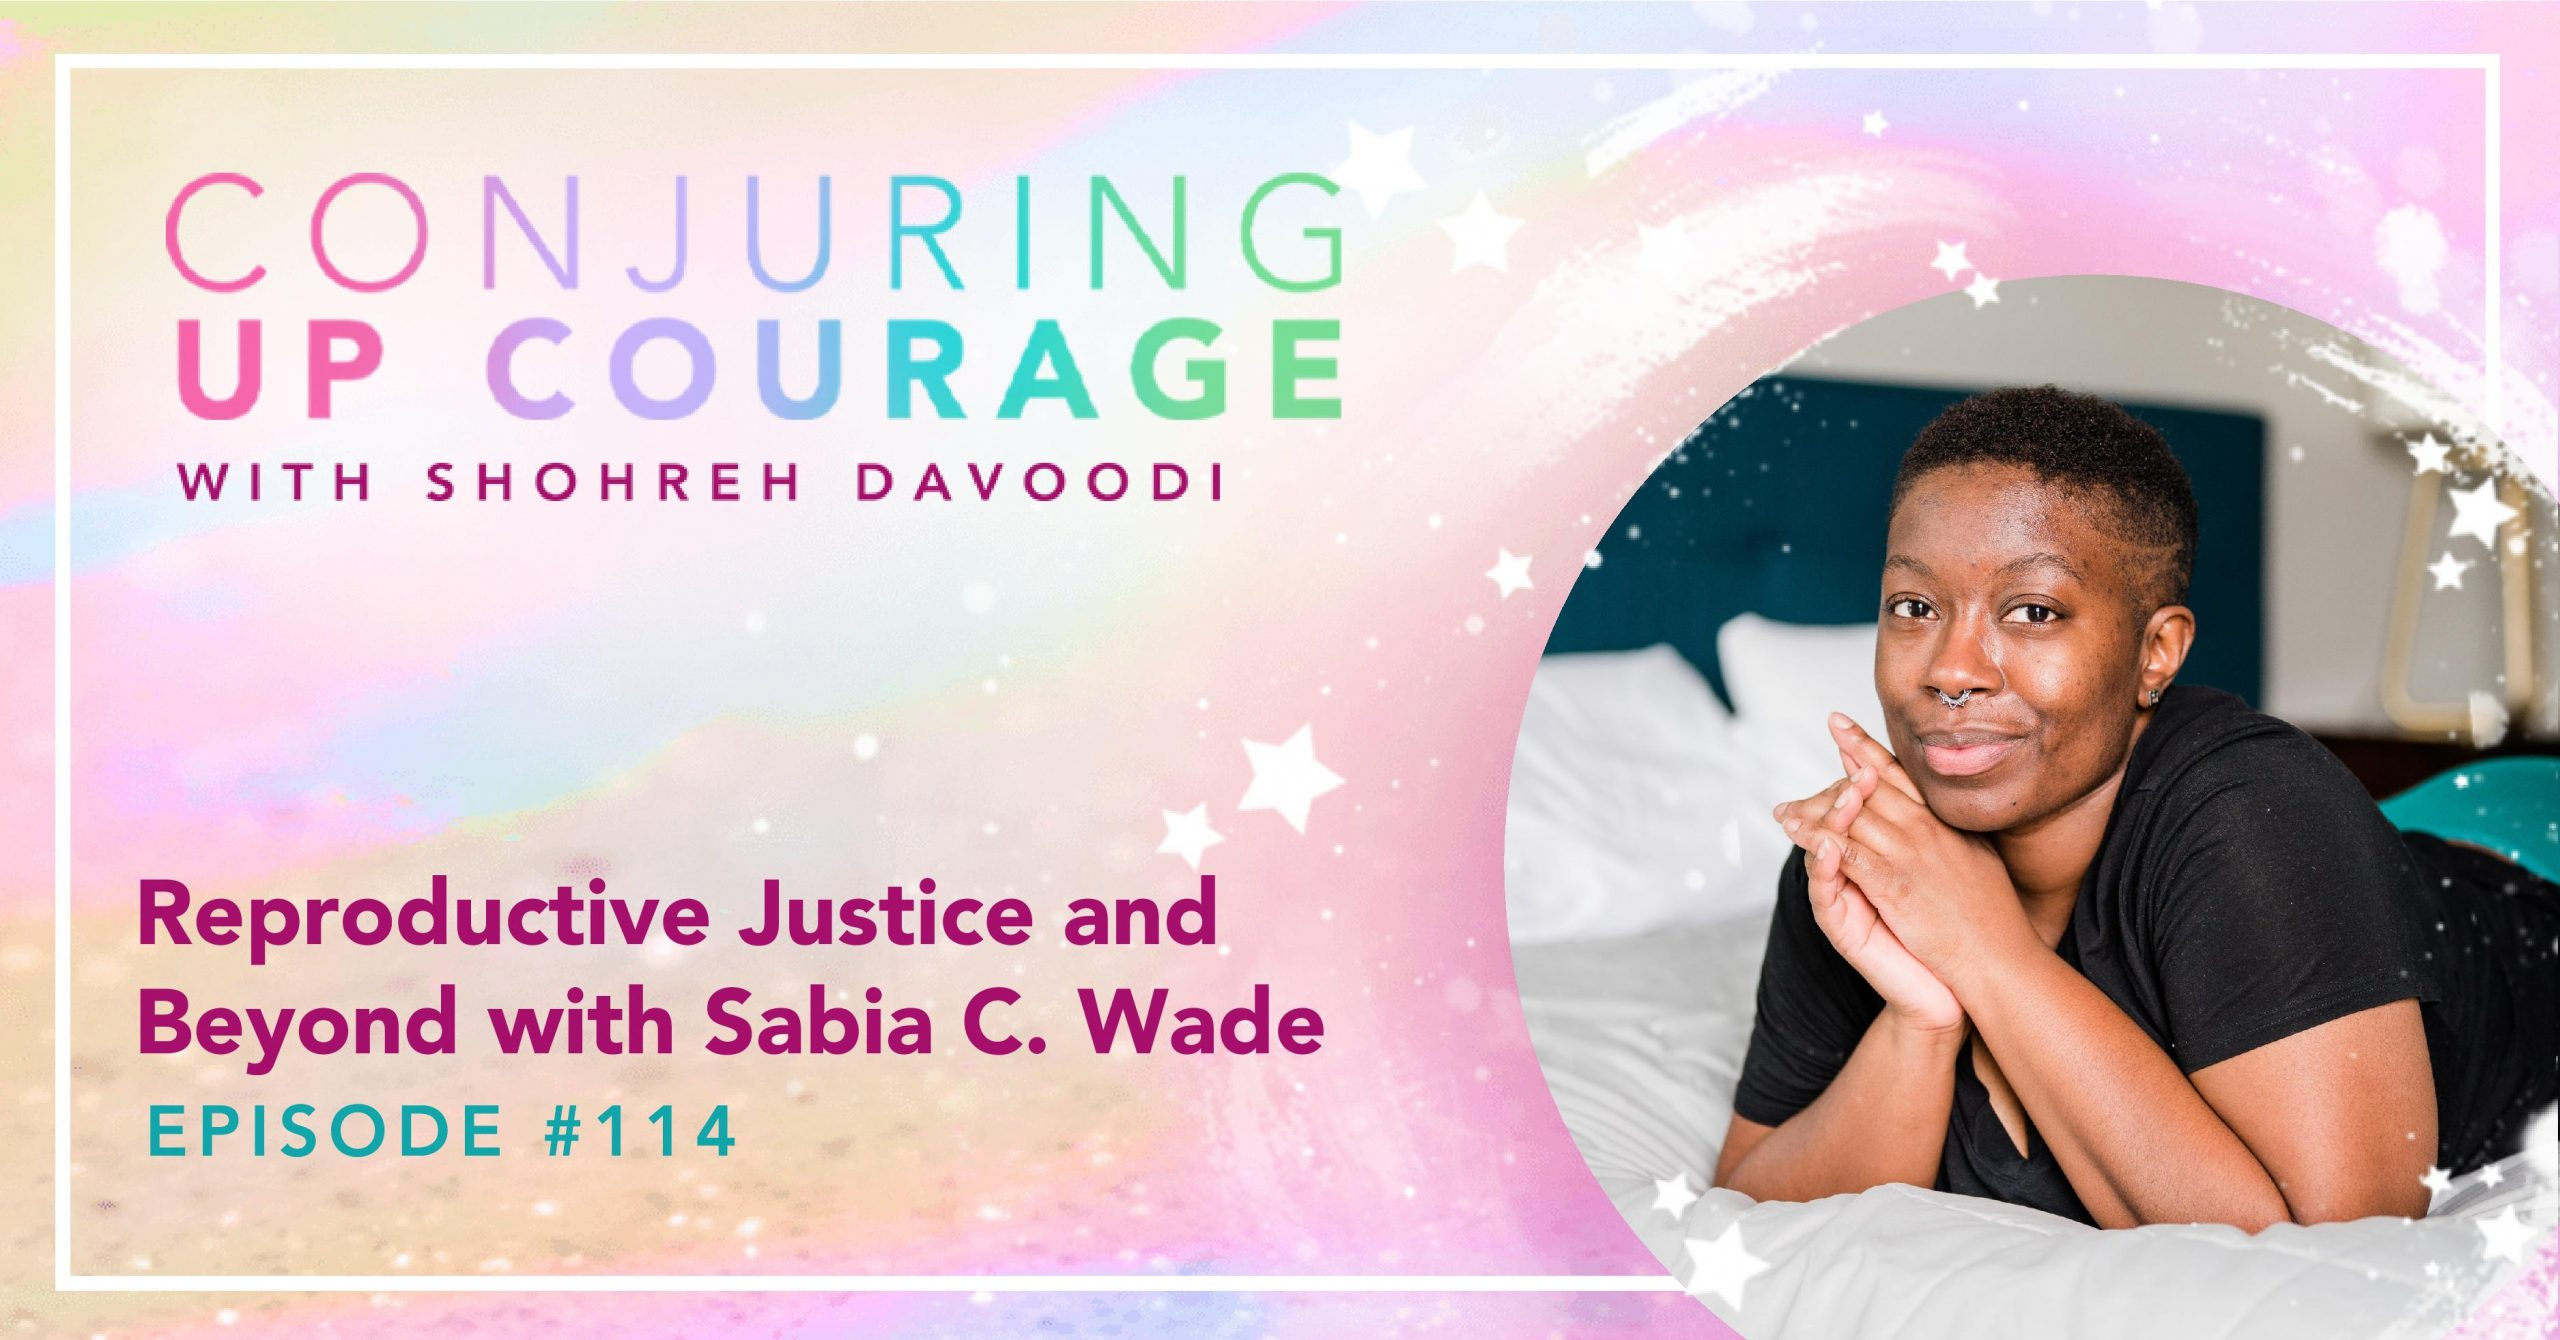 """The Conjuring Up Courage logo, a photo of Sabia layin on a bed in a black t-shirt and teal undies, and the words """"Reproductive Justice and Beyond with Sabia C. Wade Episode #114"""""""